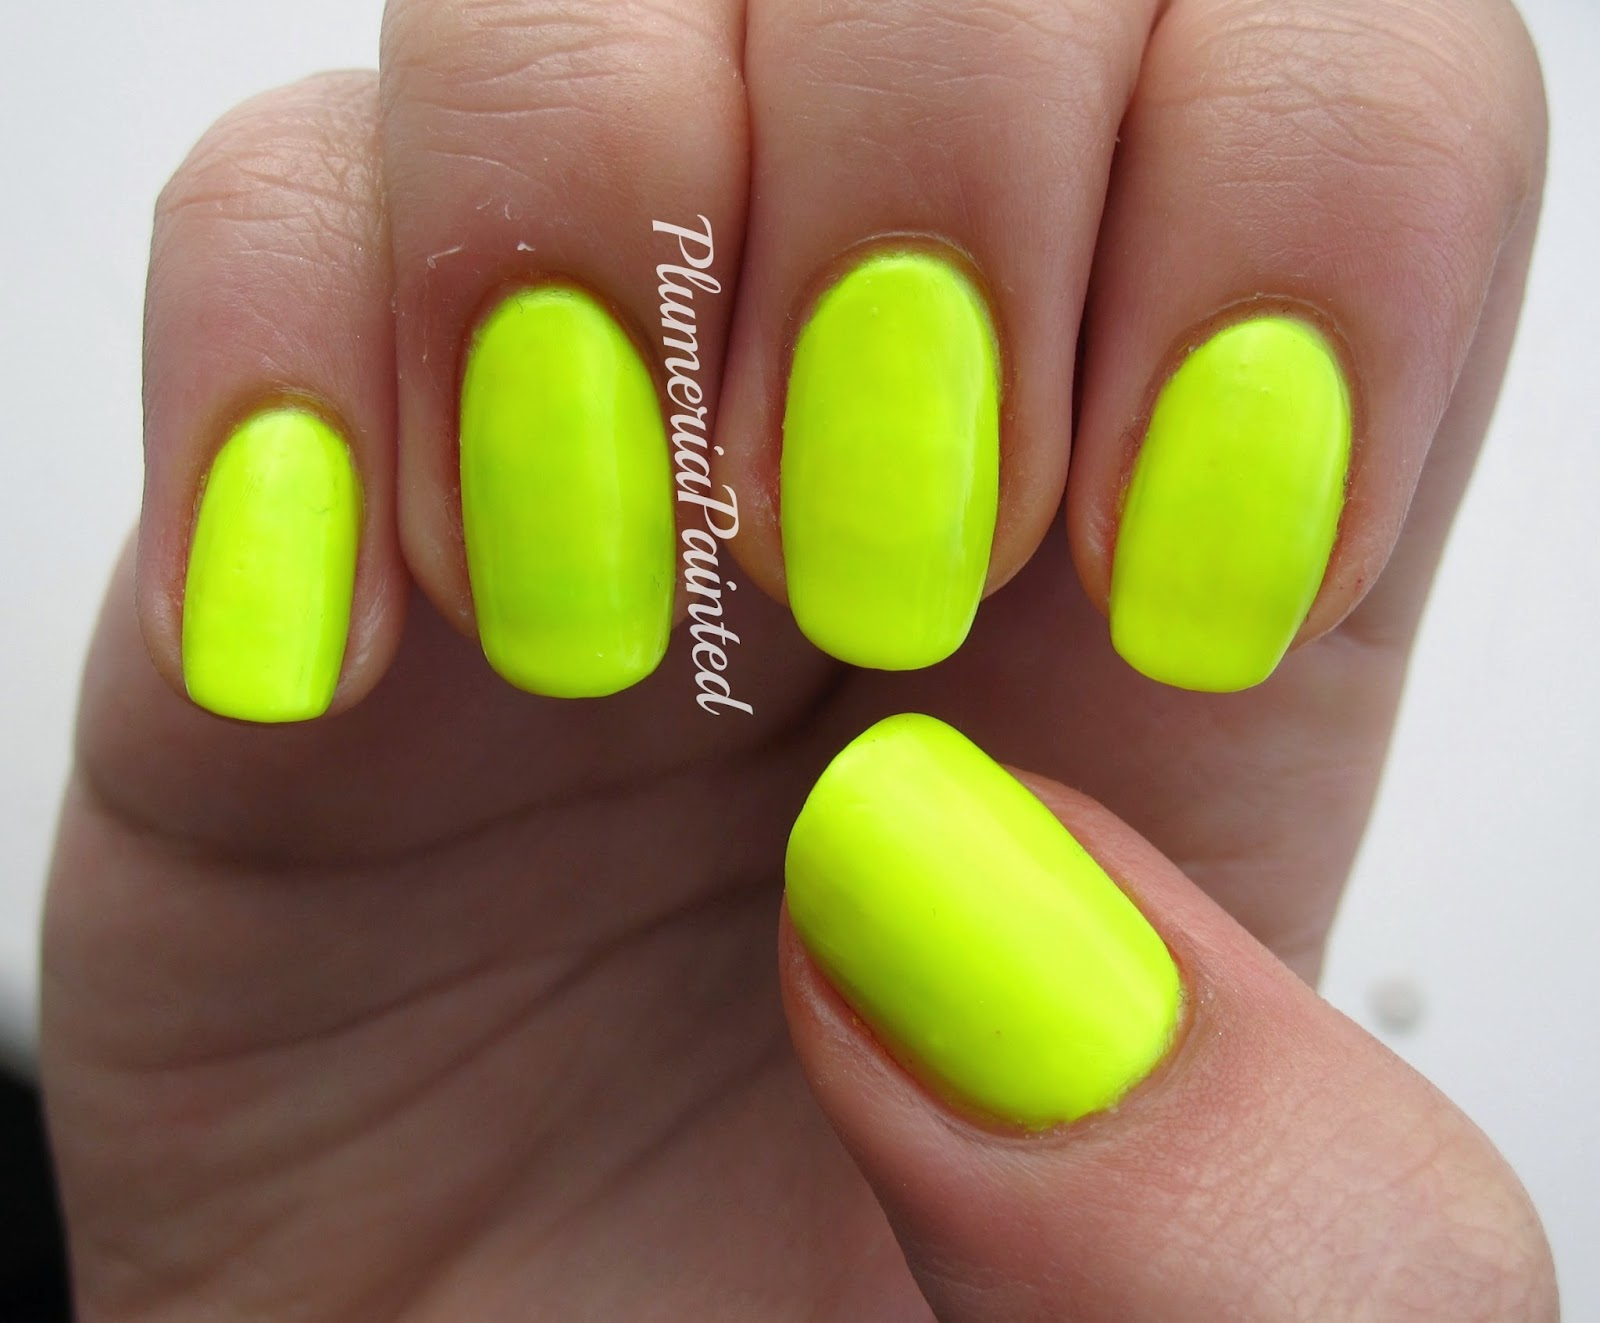 how to get rid of yellow nails after nail polish